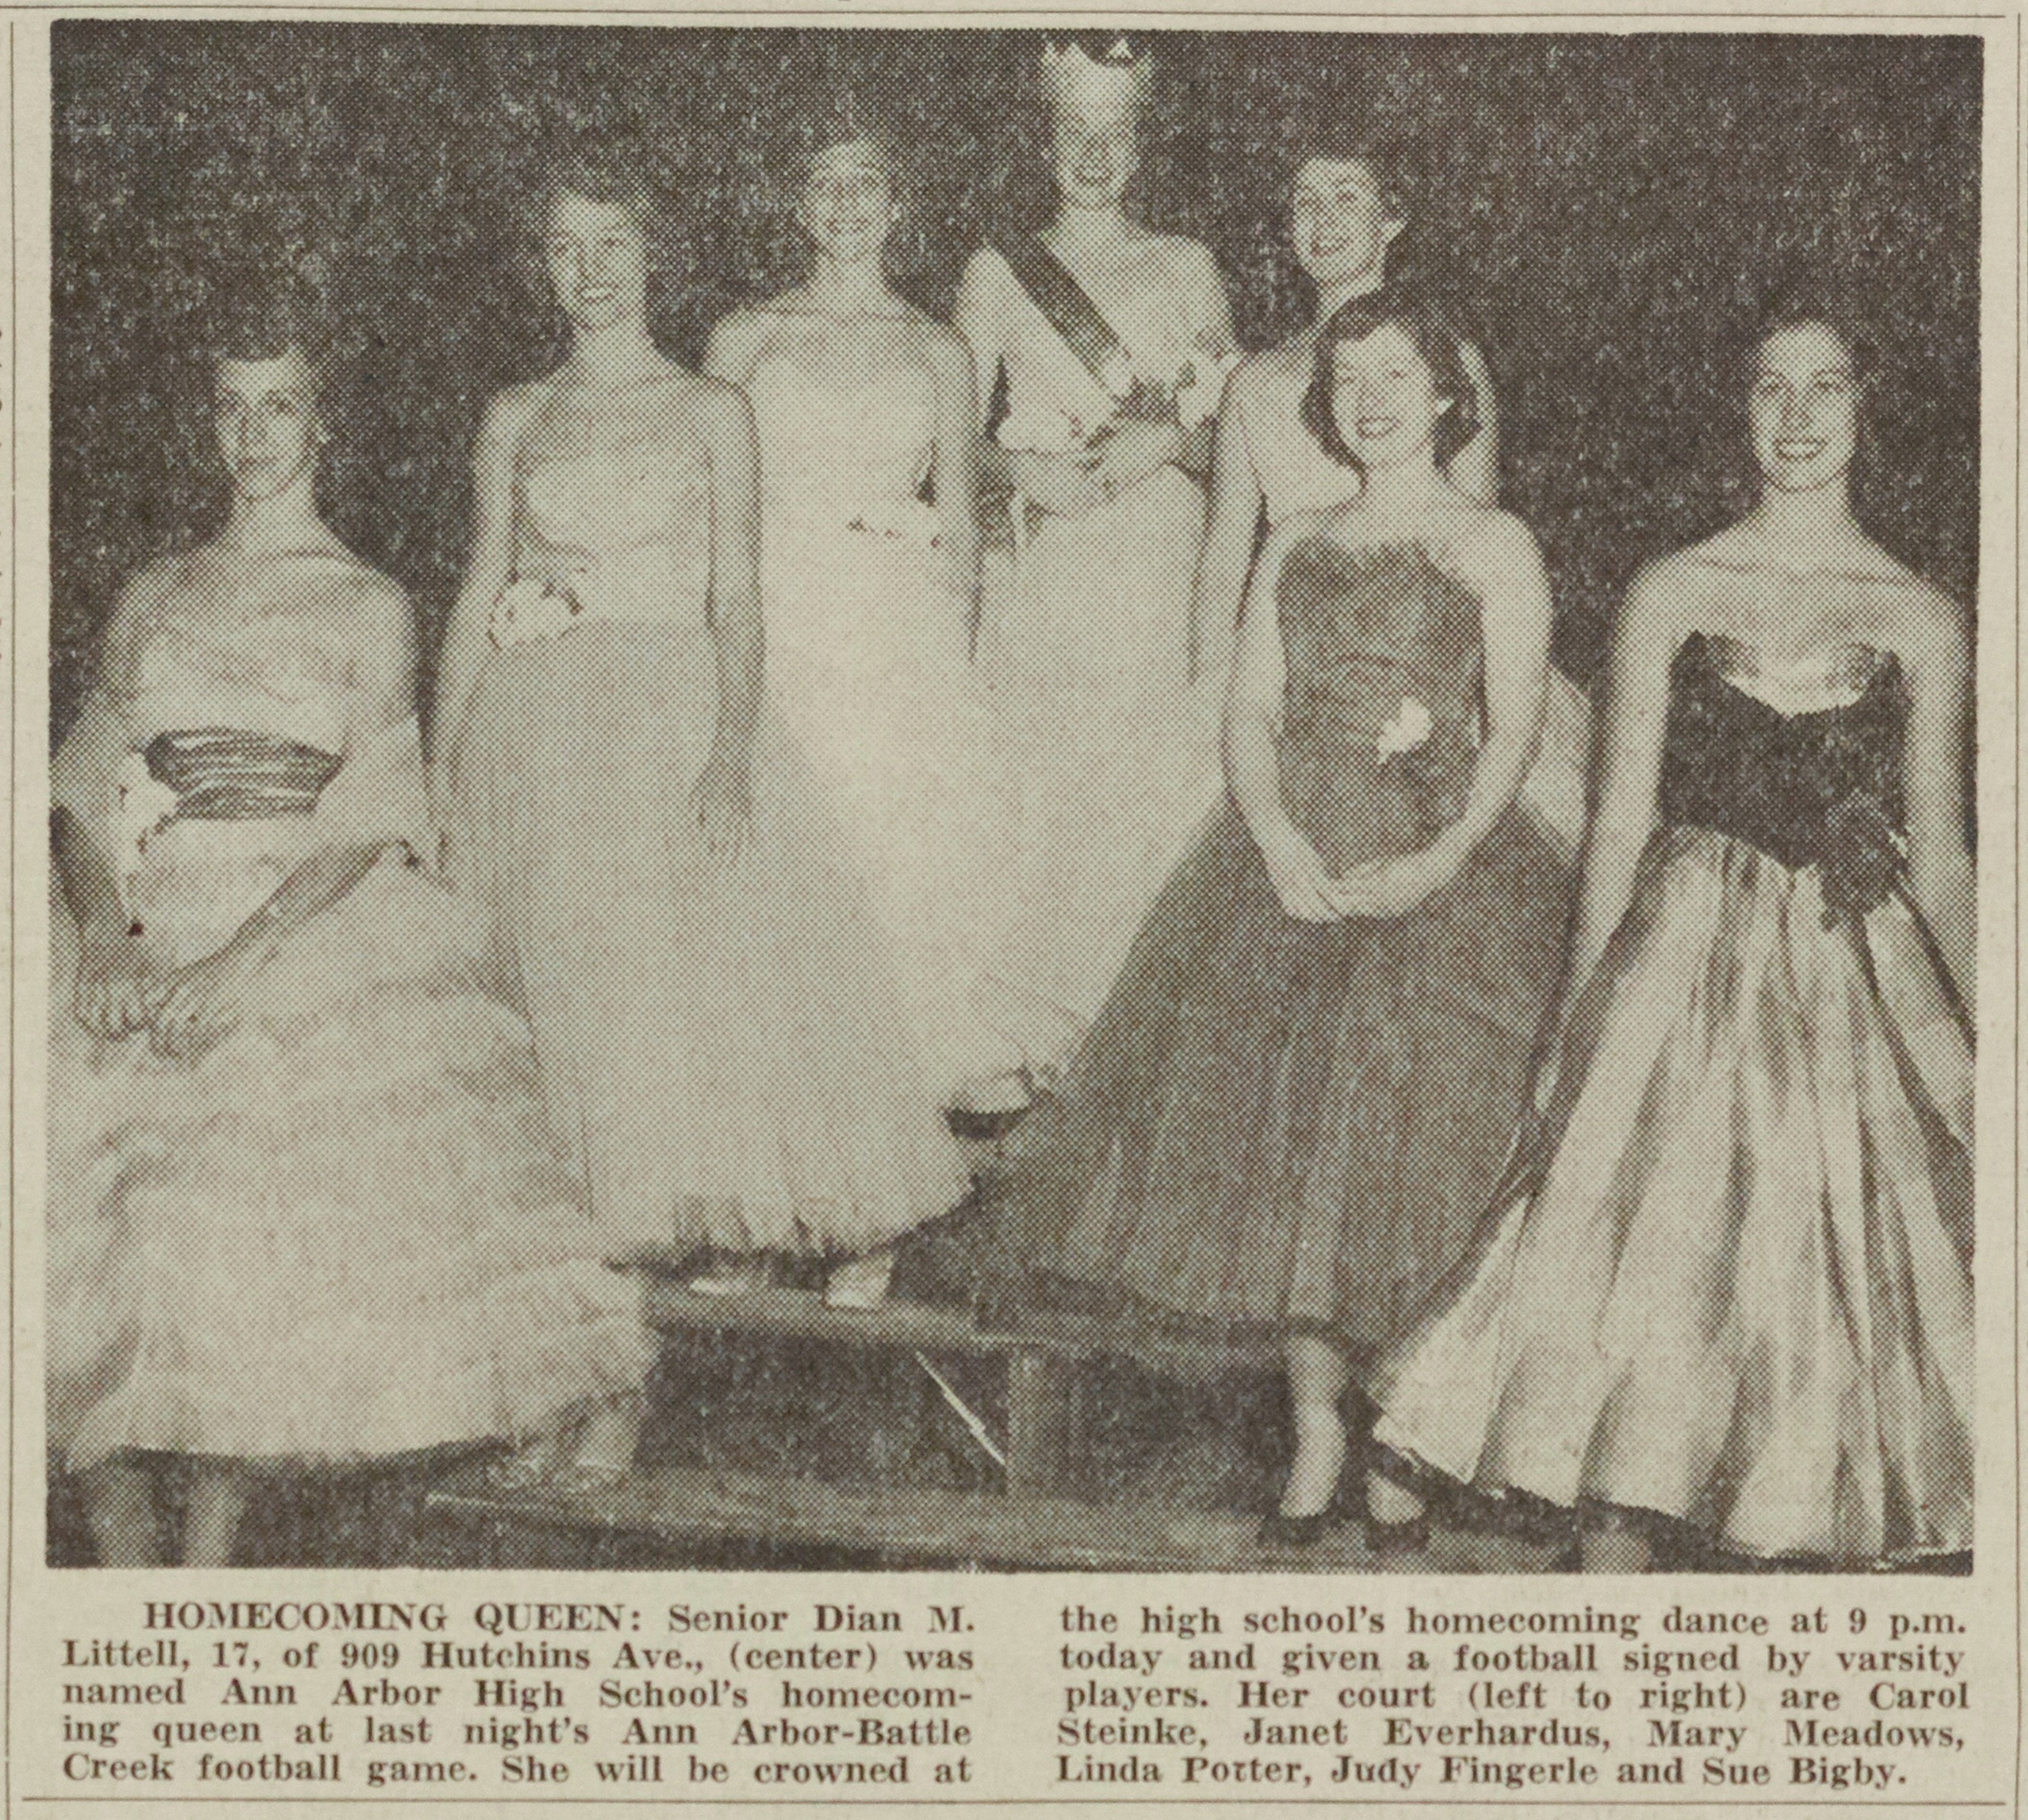 Homecoming Queen image